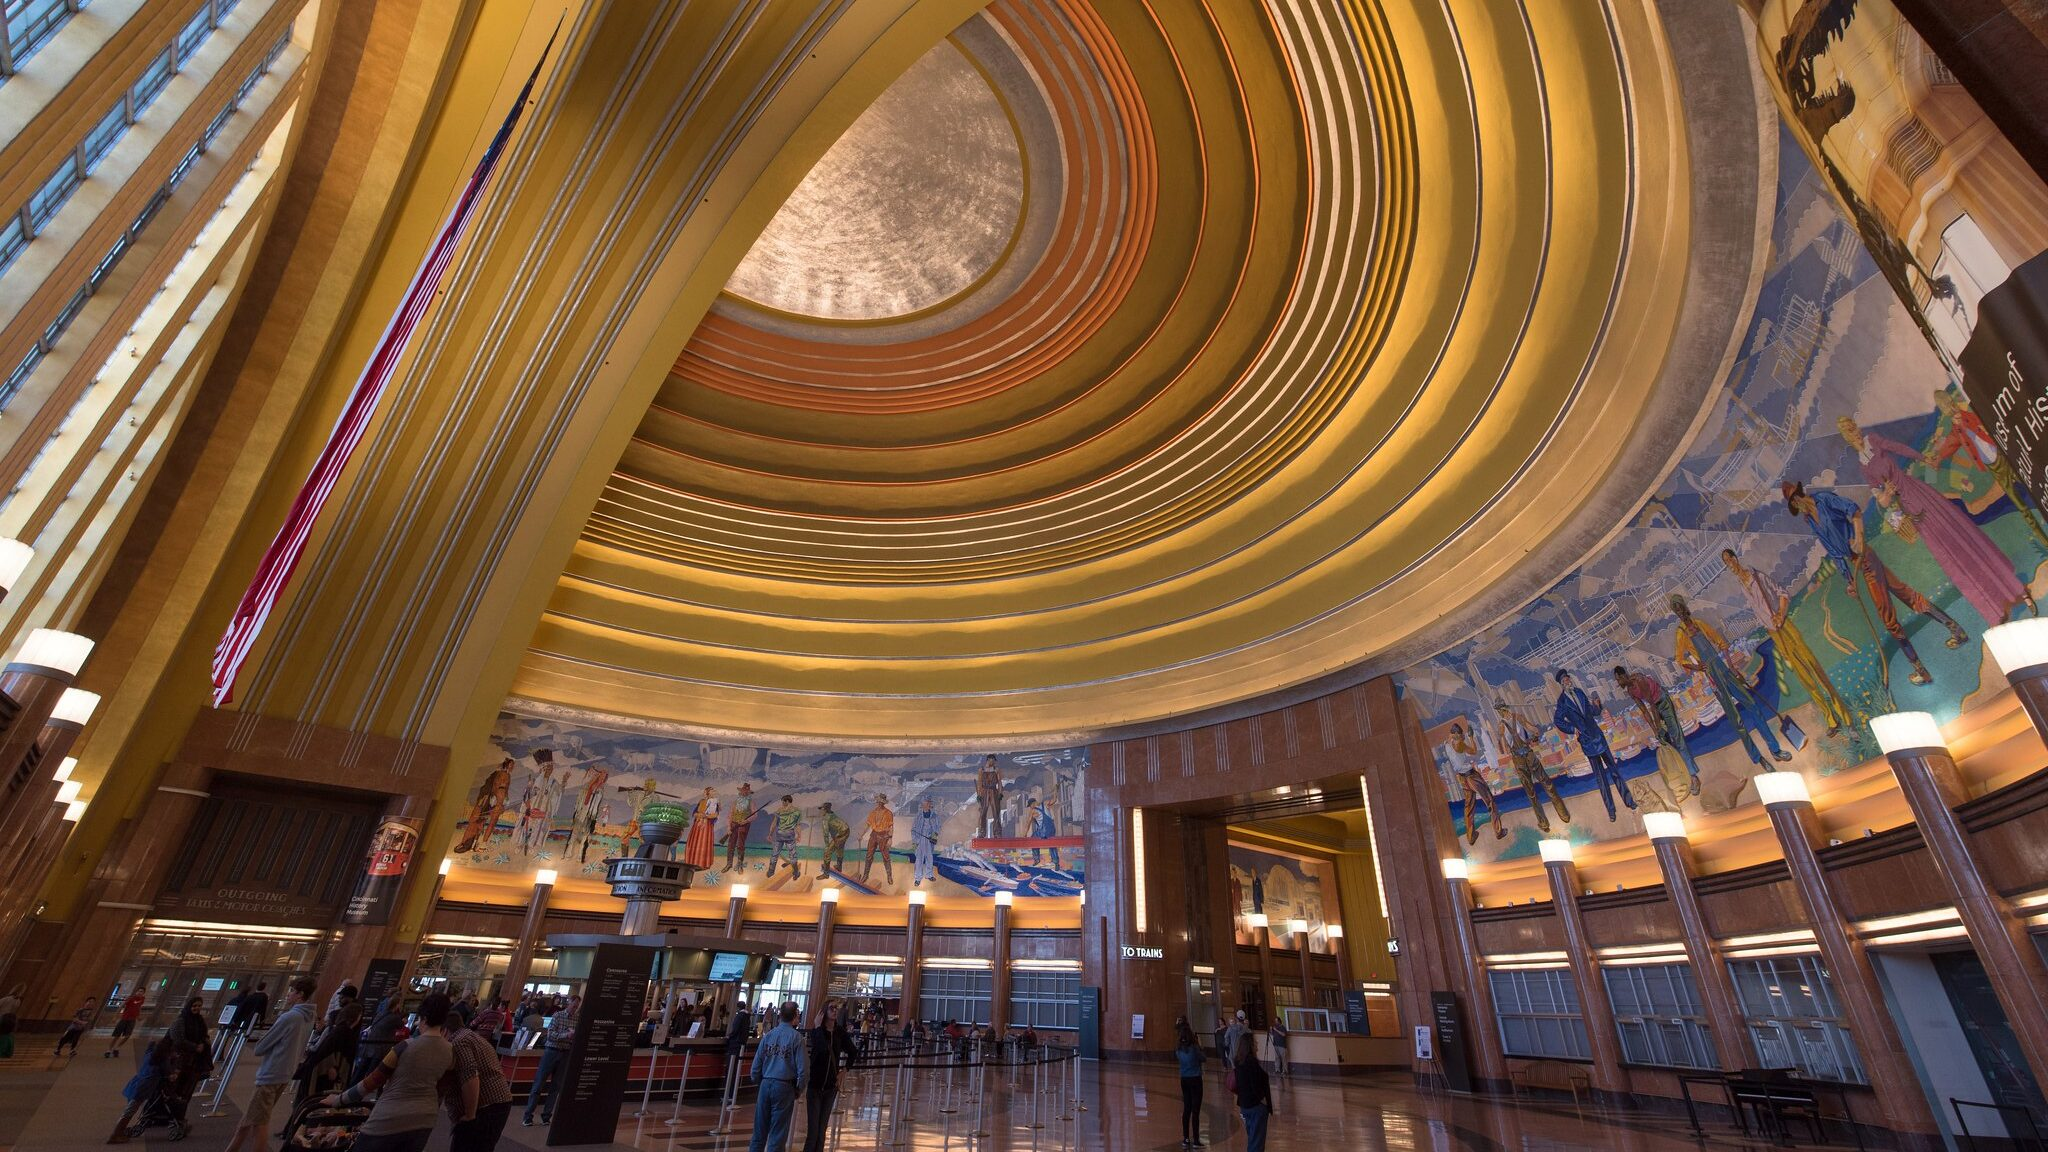 Interior of a curving Art Deco building with a museum ticket queue visible